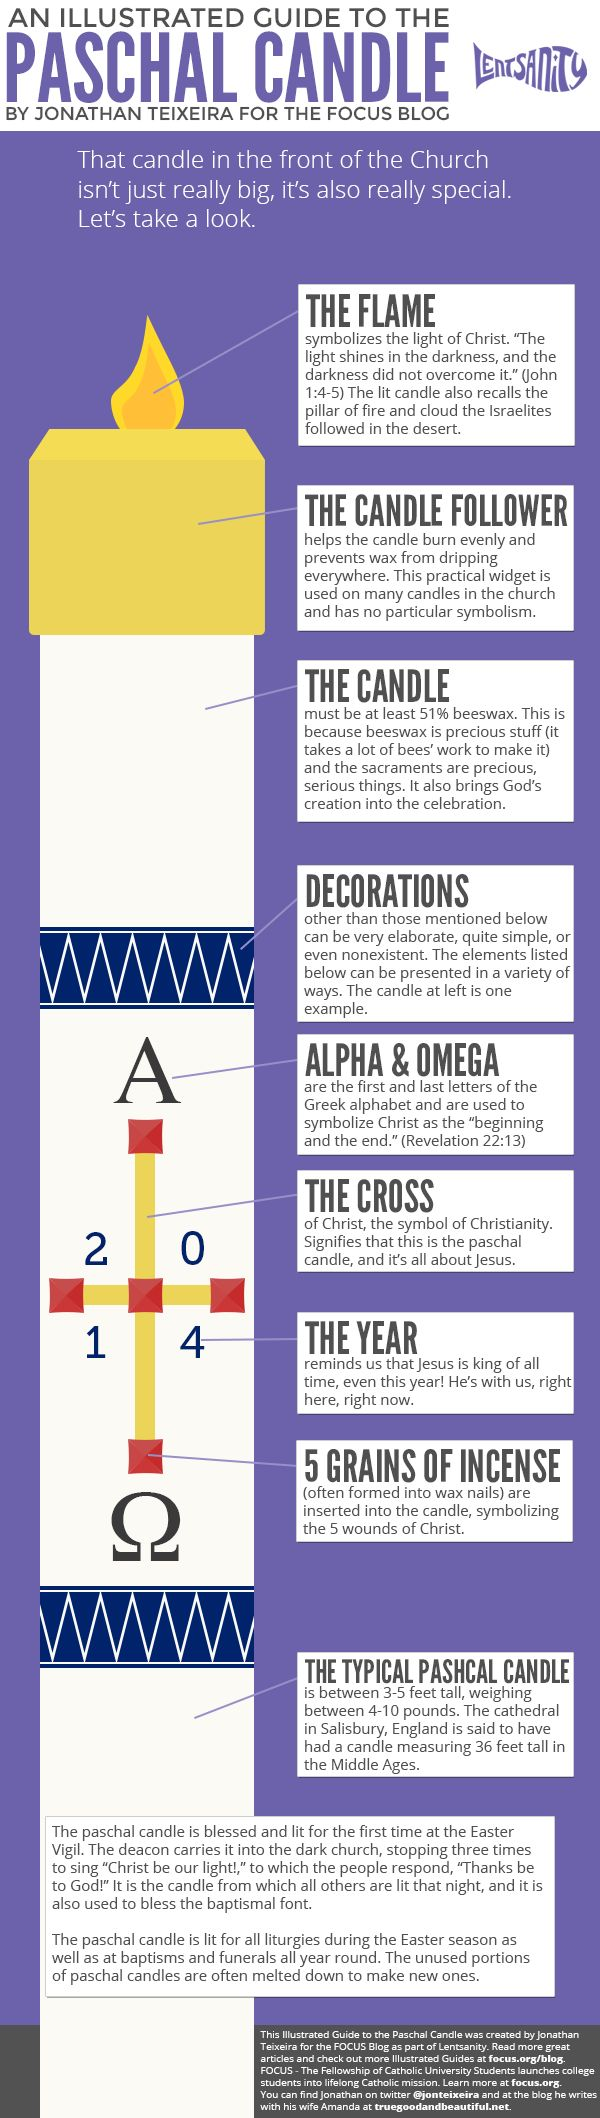 An Illustrated Guide to the Paschal Candle